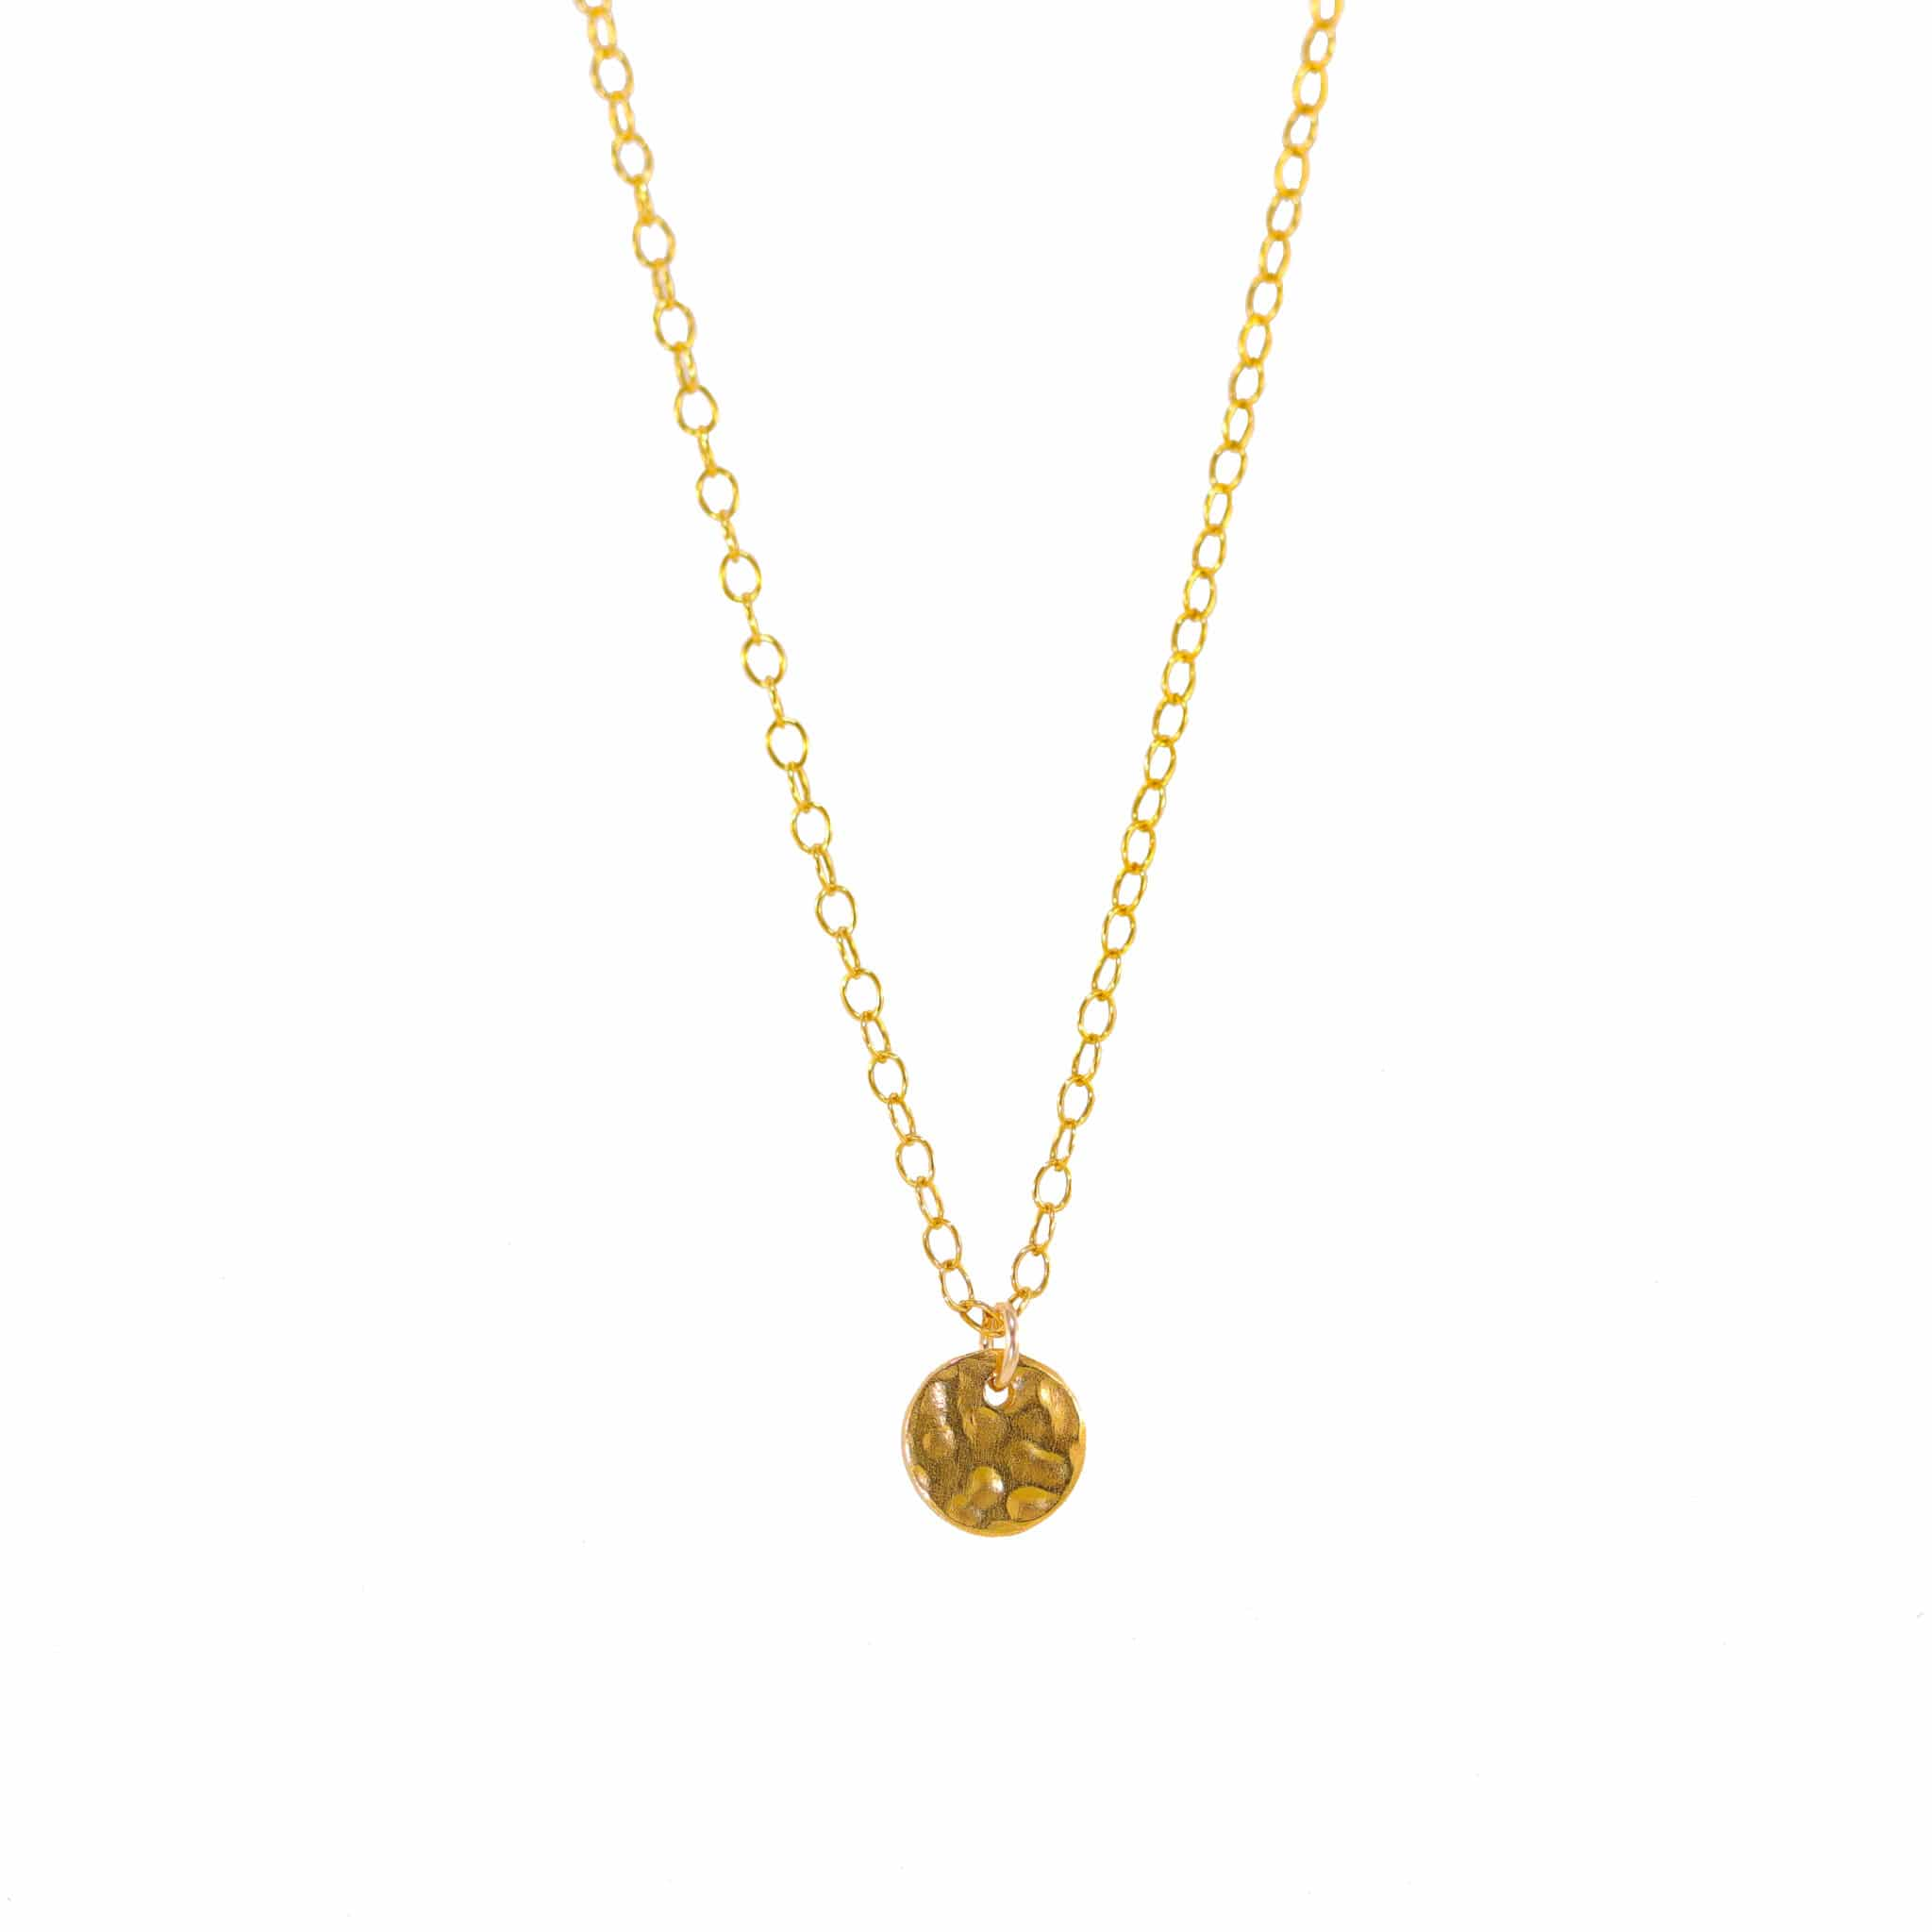 Impressions Small Gold Disc Pendant Necklace